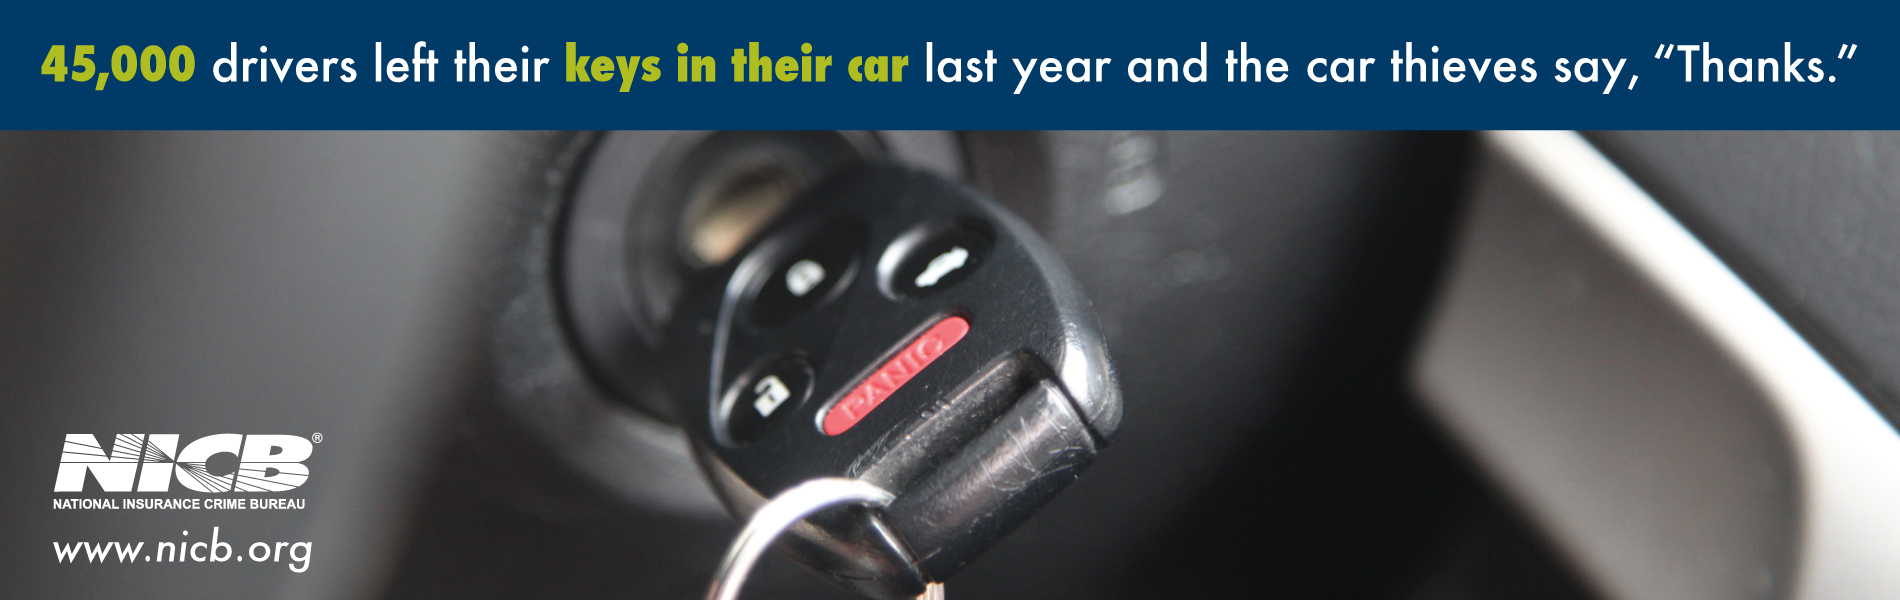 NICB's New PSAs Warn of Keys Left in Cars and Cargo Theft